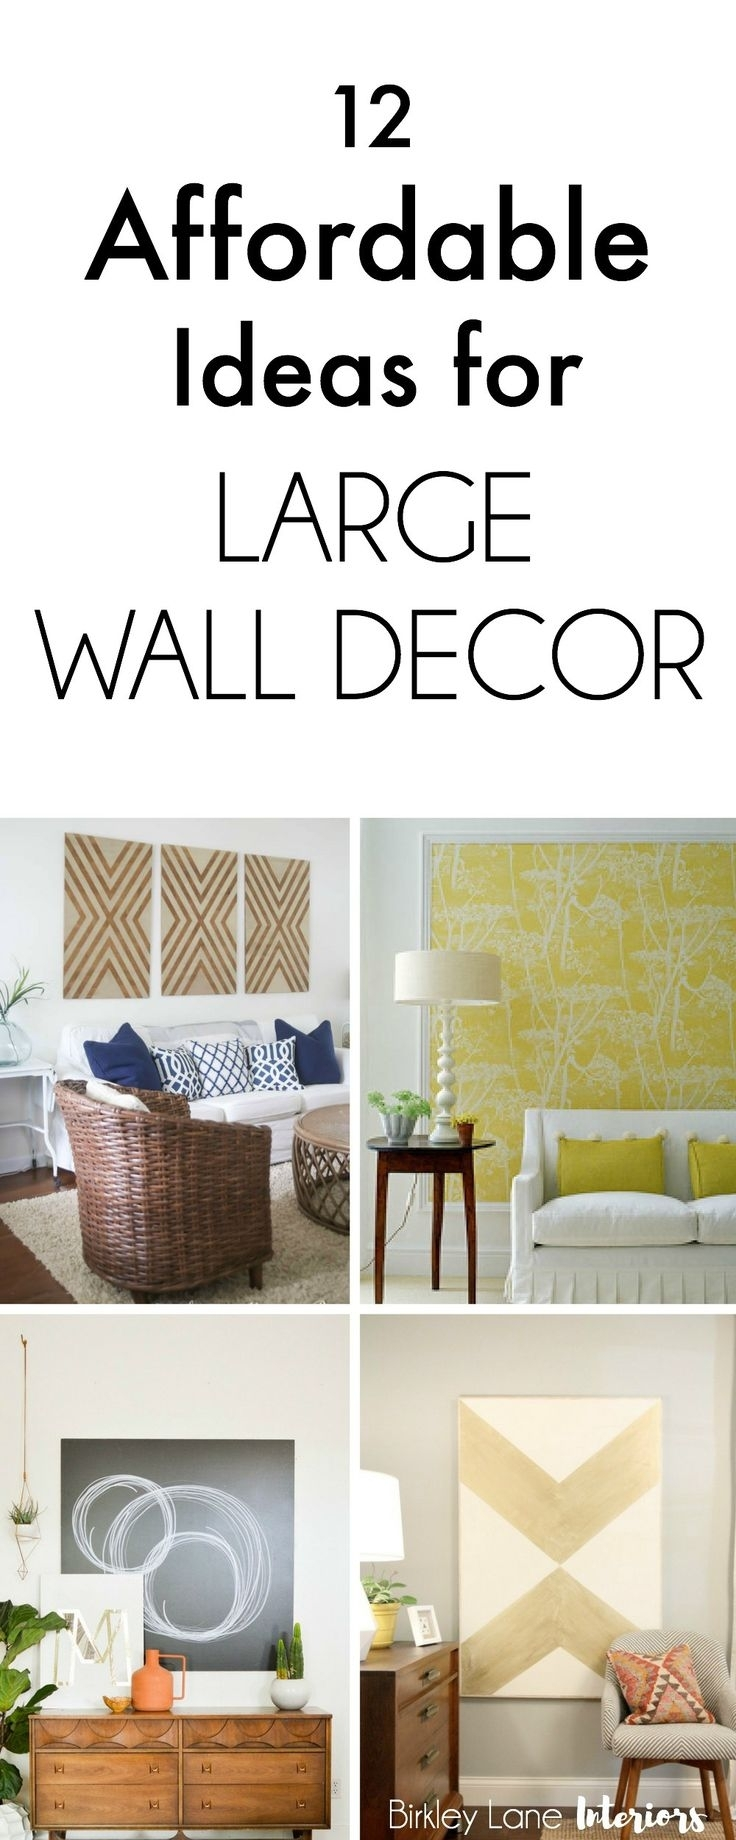 Best 25 Large Wall Art Ideas On Pinterest Framed Art, Affordable with regard to Affordable Wall Art (Image 10 of 20)